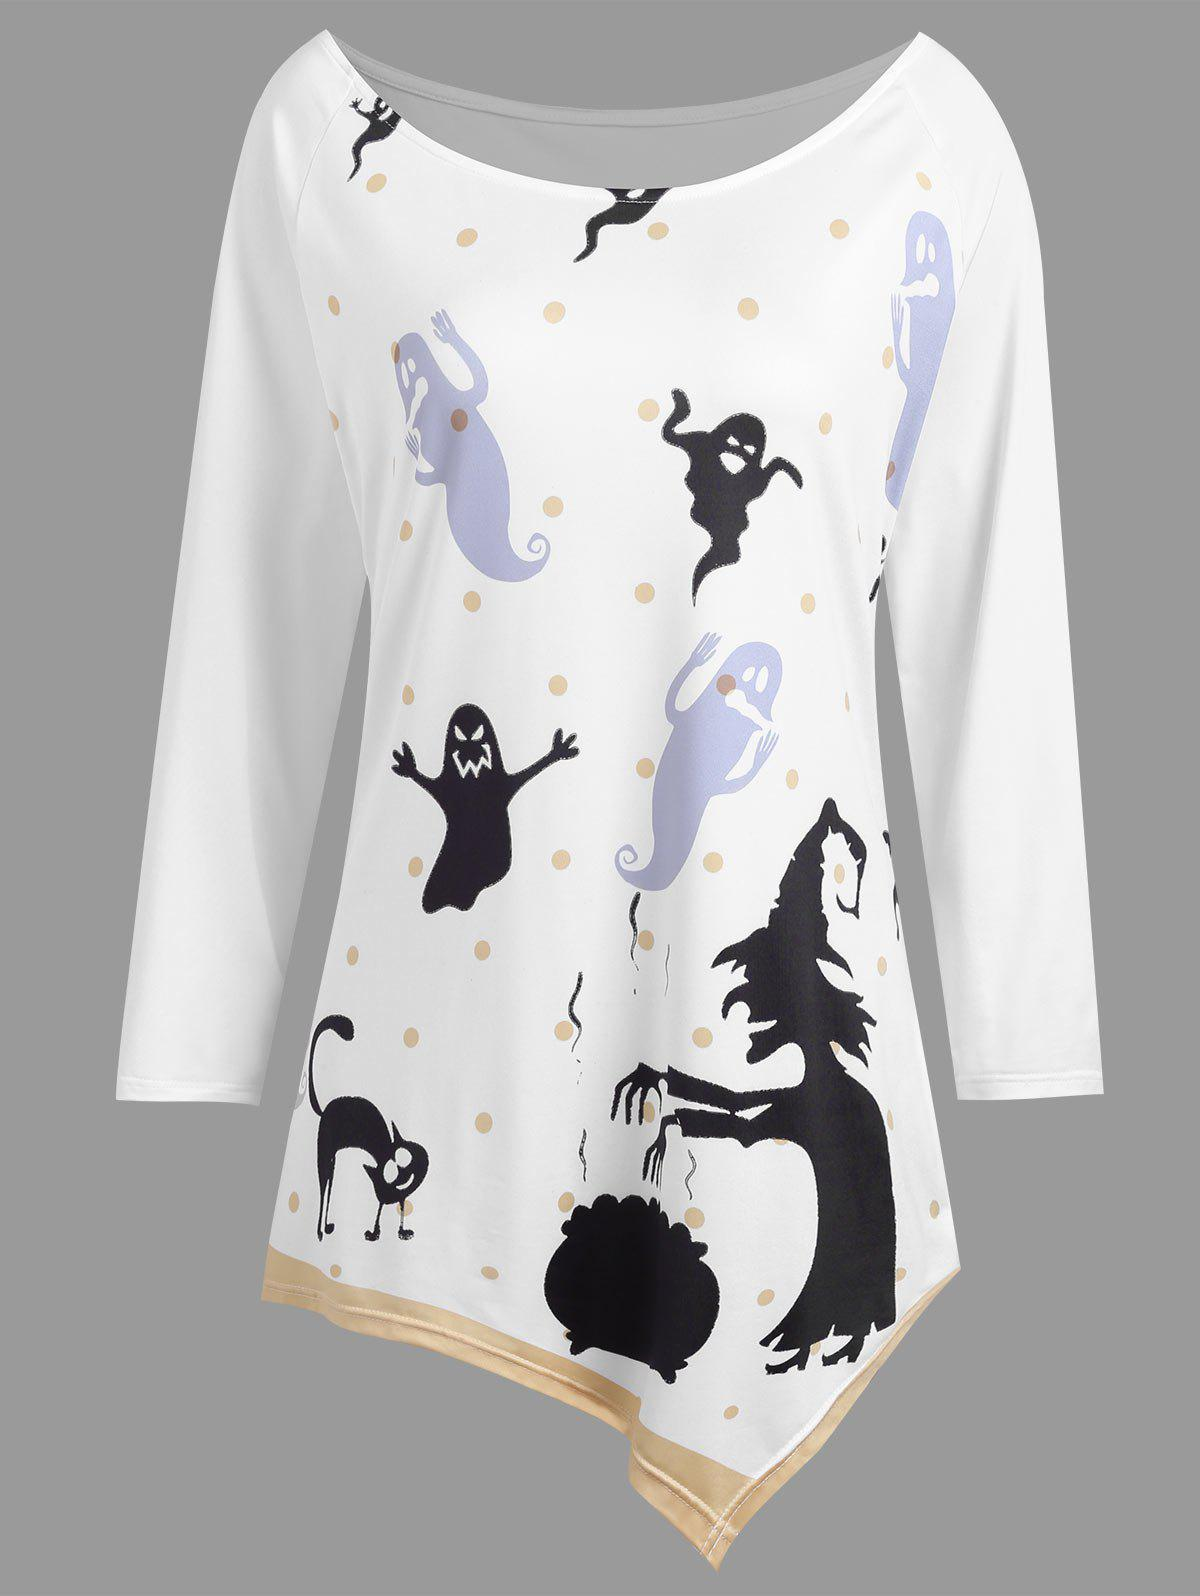 Plus Size Asymmetrical Halloween Cat Witch TeeWOMEN<br><br>Size: 4XL; Color: WHITE; Material: Cotton,Polyester; Shirt Length: Long; Sleeve Length: Full; Collar: Scoop Neck; Style: Fashion; Season: Fall; Sleeve Type: Raglan Sleeve; Pattern Type: Animal,Polka Dot,Print; Weight: 0.2300kg; Package Contents: 1 x T-shirt;